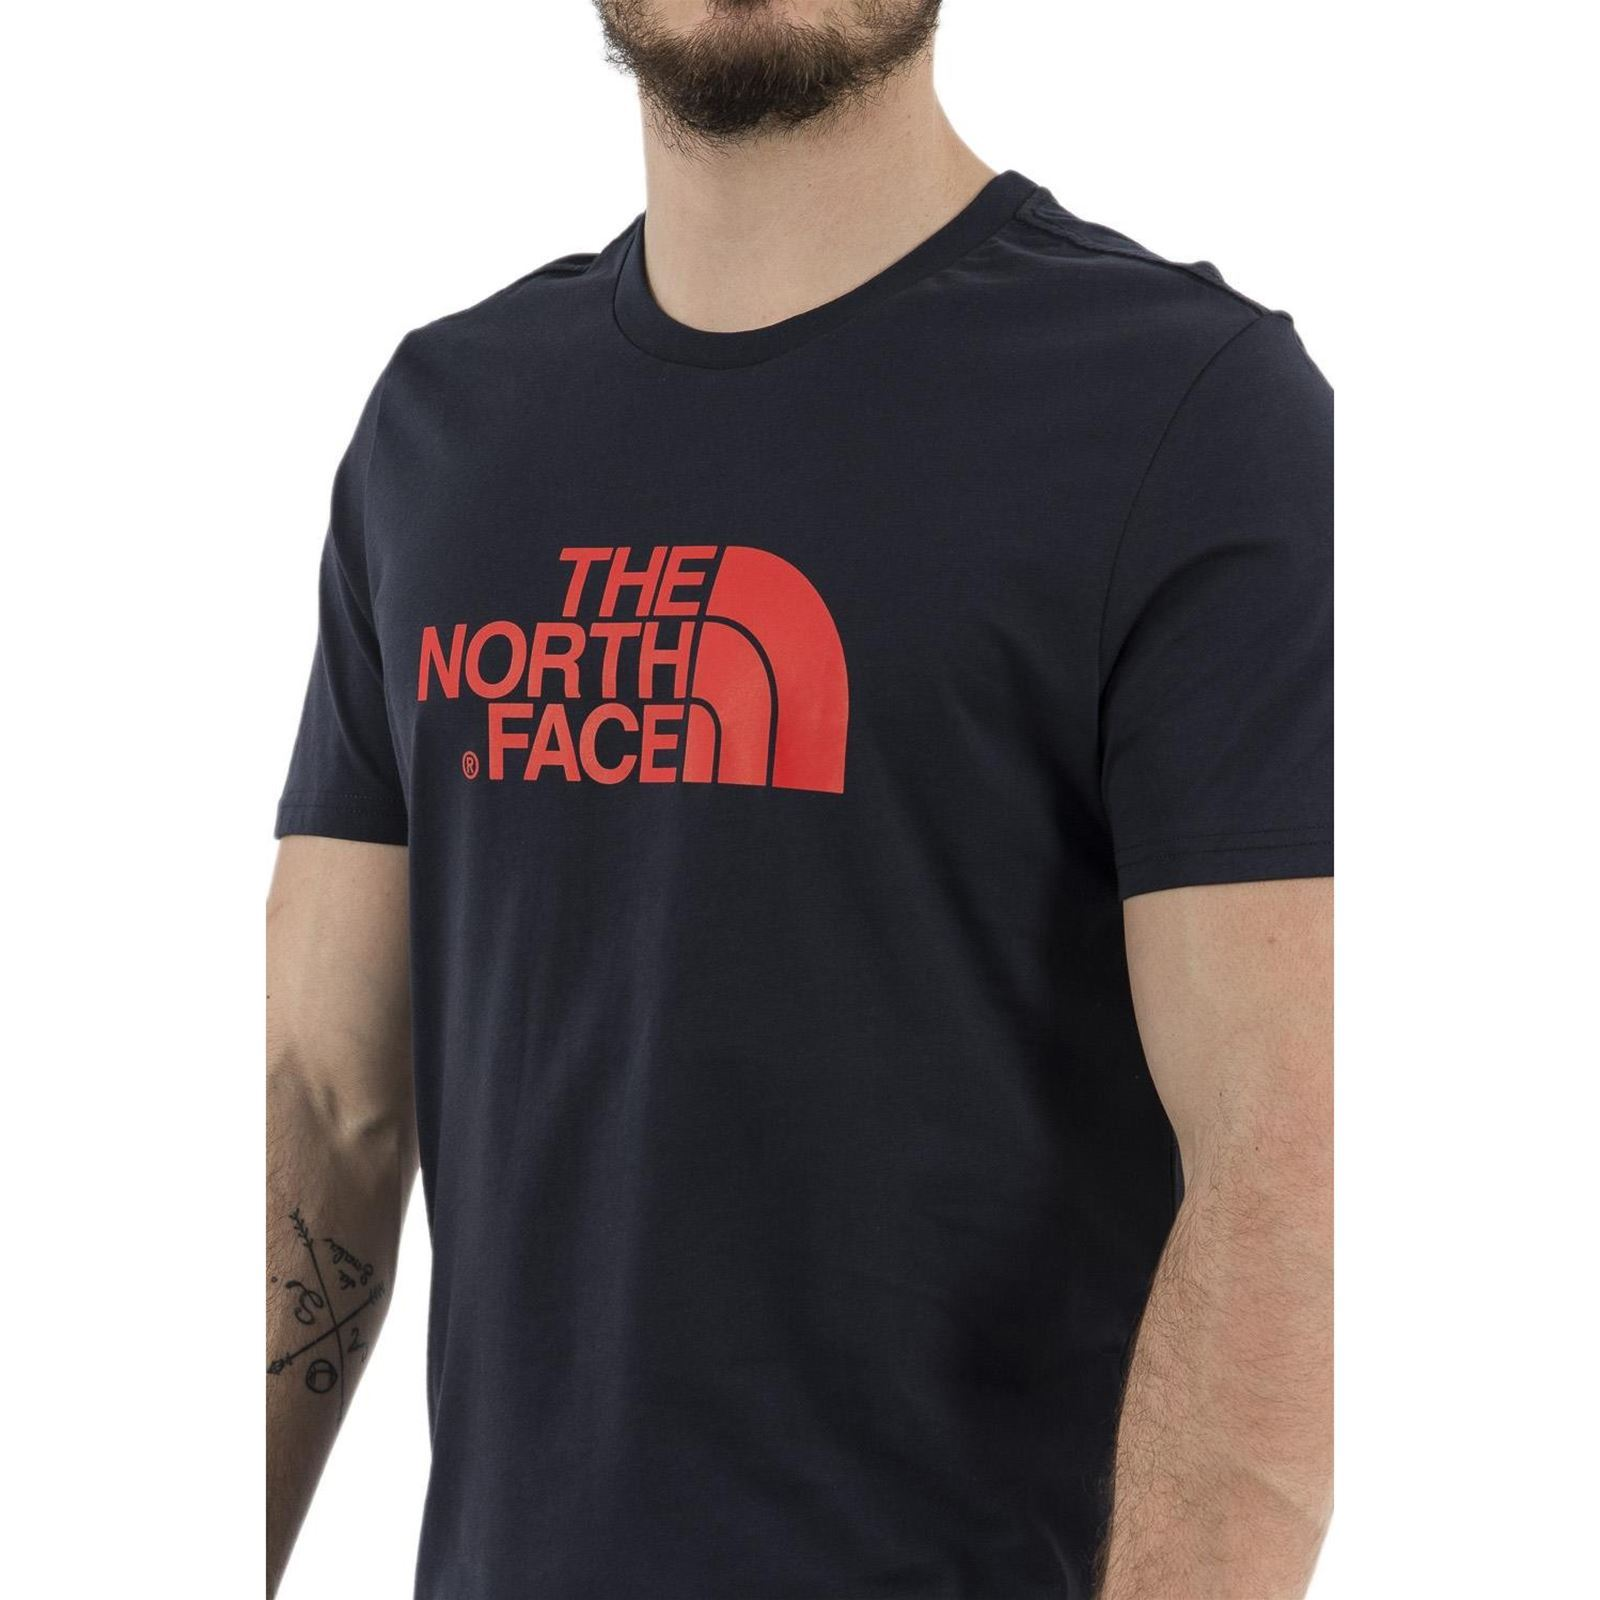 Face shirt Homme The Manches T North CourtesBleu V 8nOPwk0